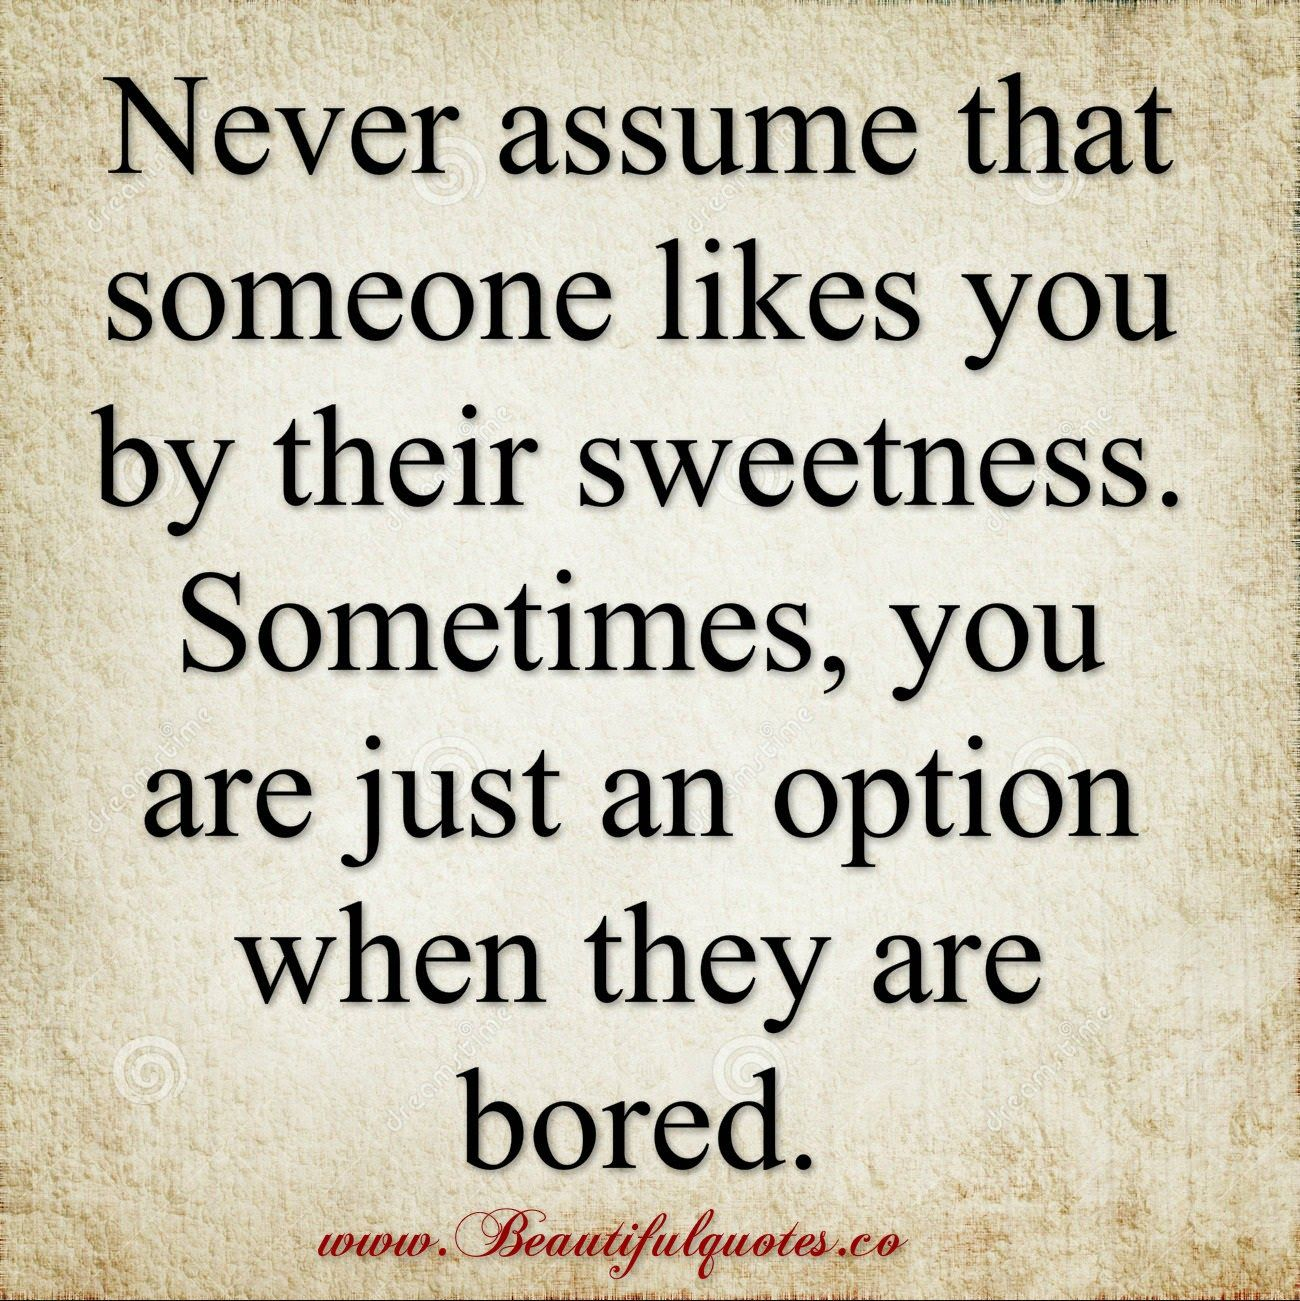 Beautiful Quotes May 2014 Beautiful Quotes Quote Posters Quotes